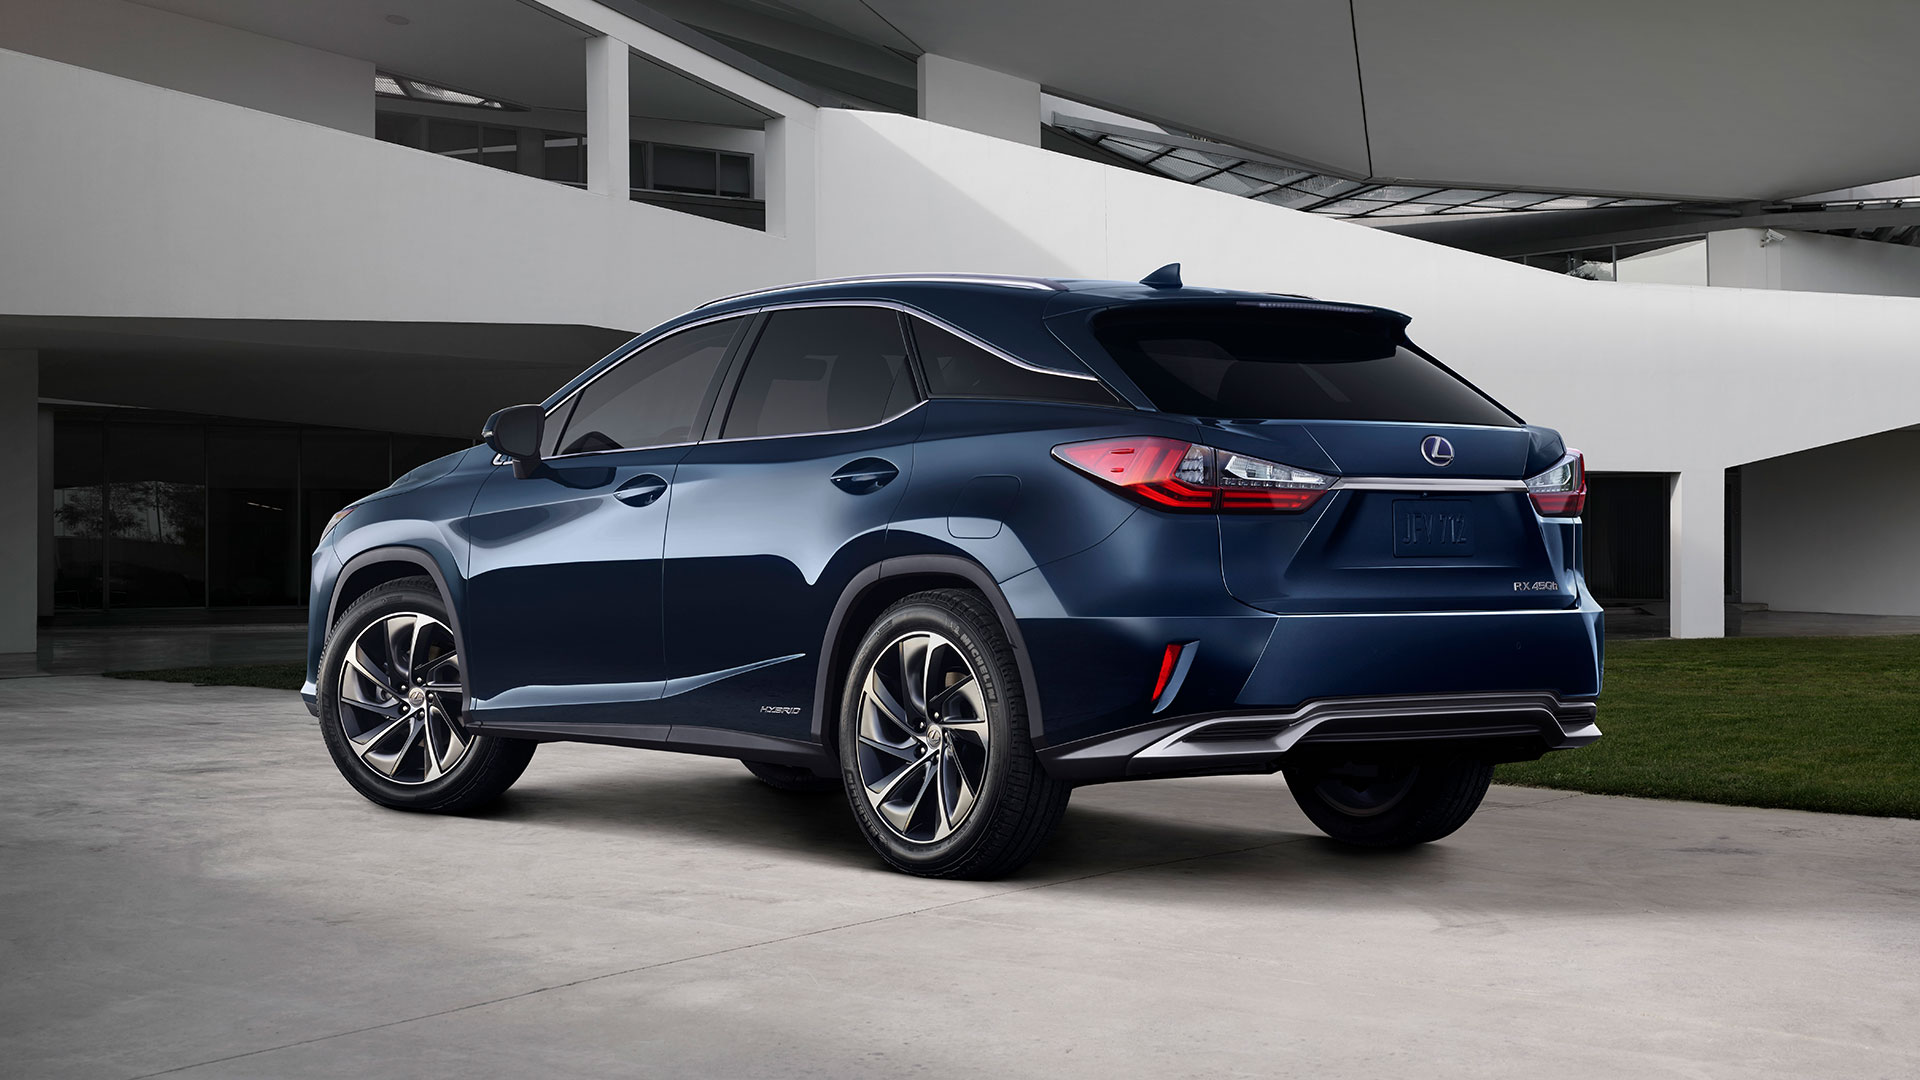 2017 lexus rx 450h next steps personalise